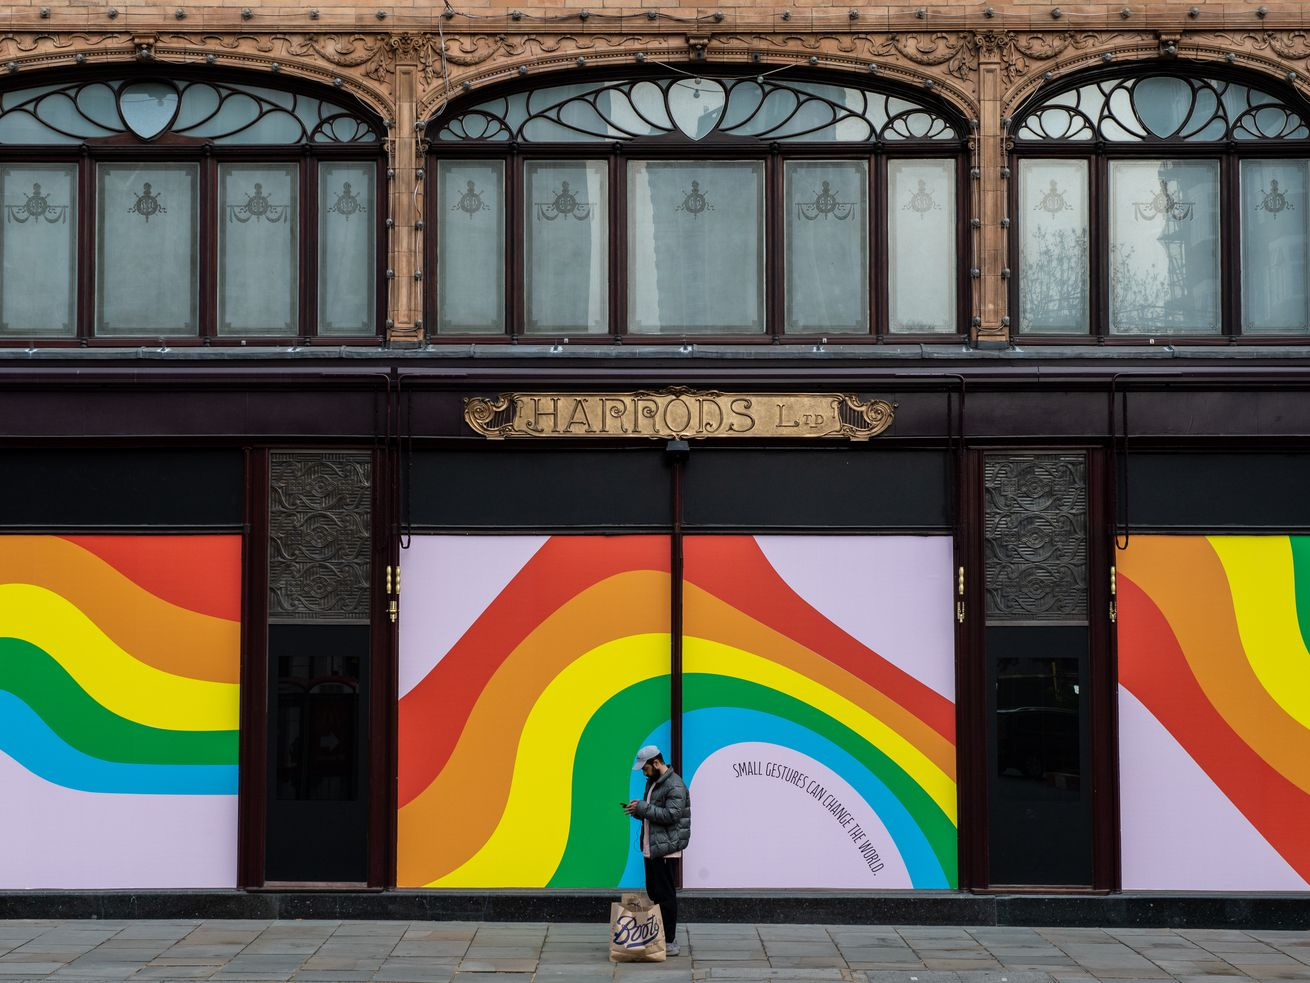 A man looks at his phone while standing outside boarded-up windows at Harrods London department store.